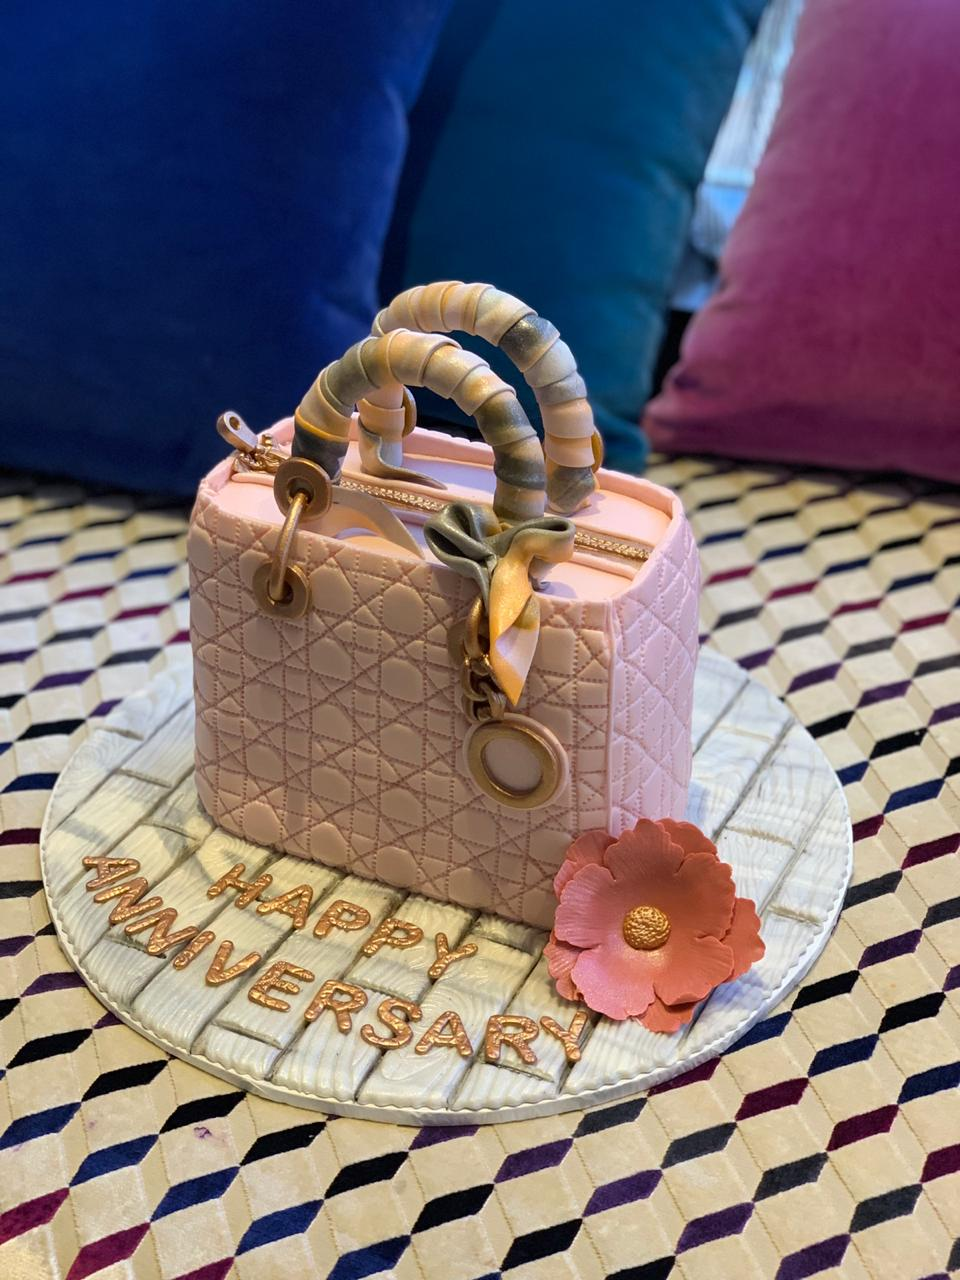 A special cake because your girl has been loving Dior lately